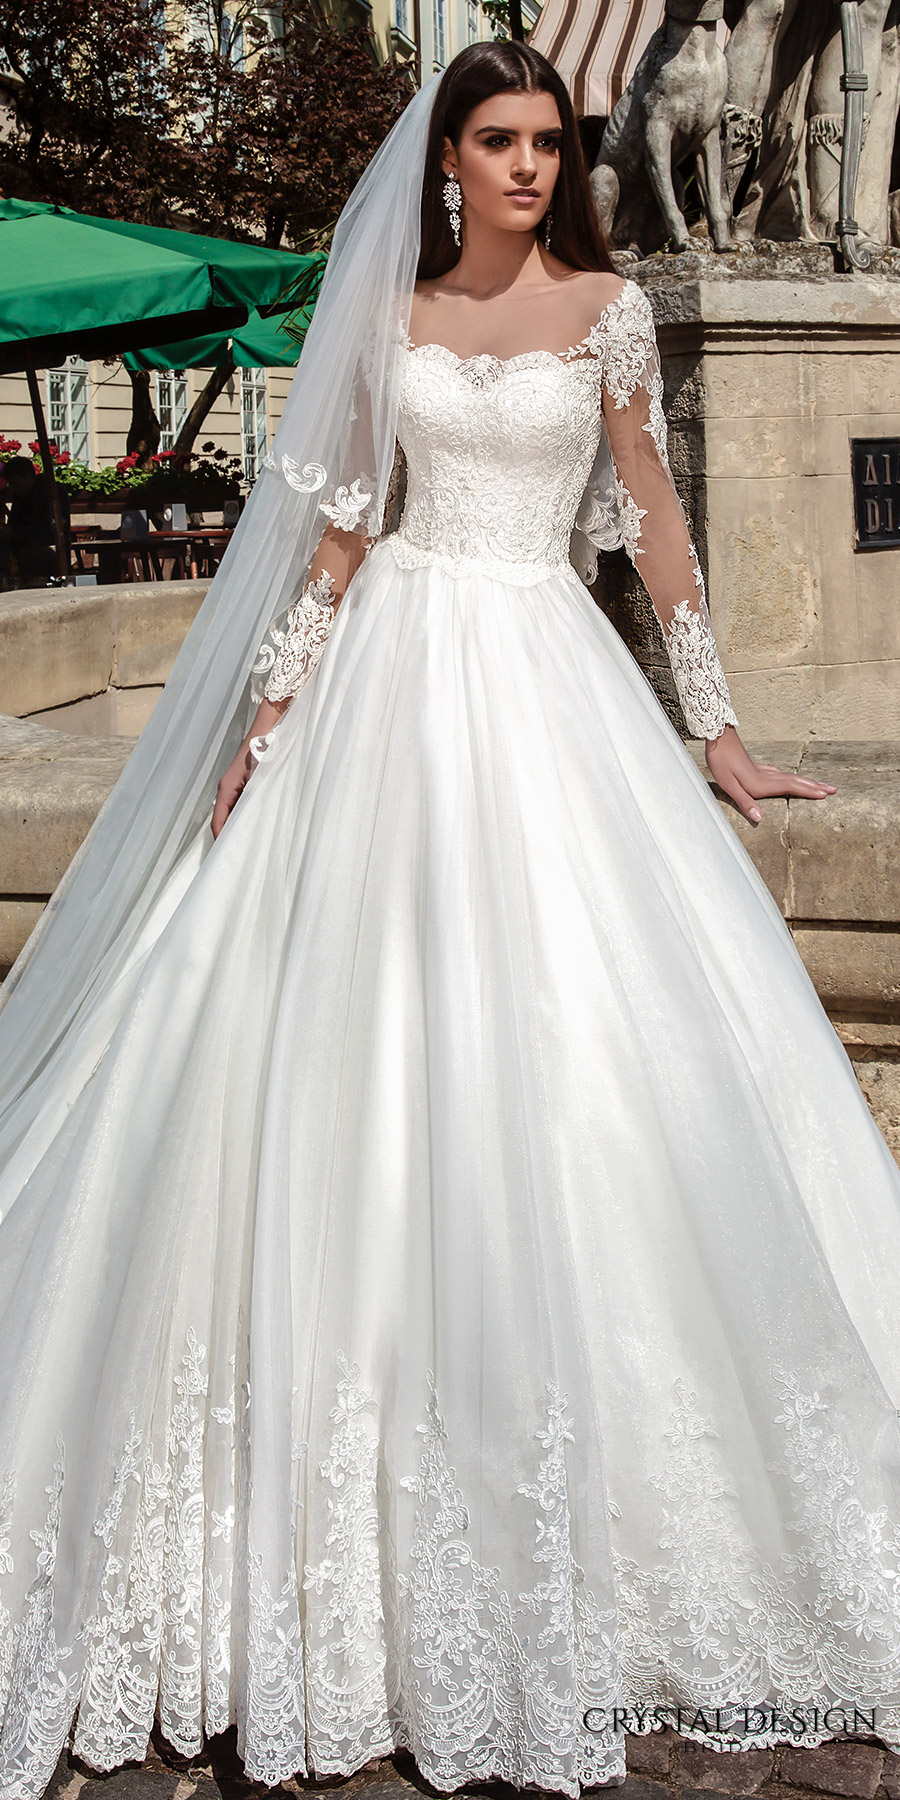 Consign Wedding Dress